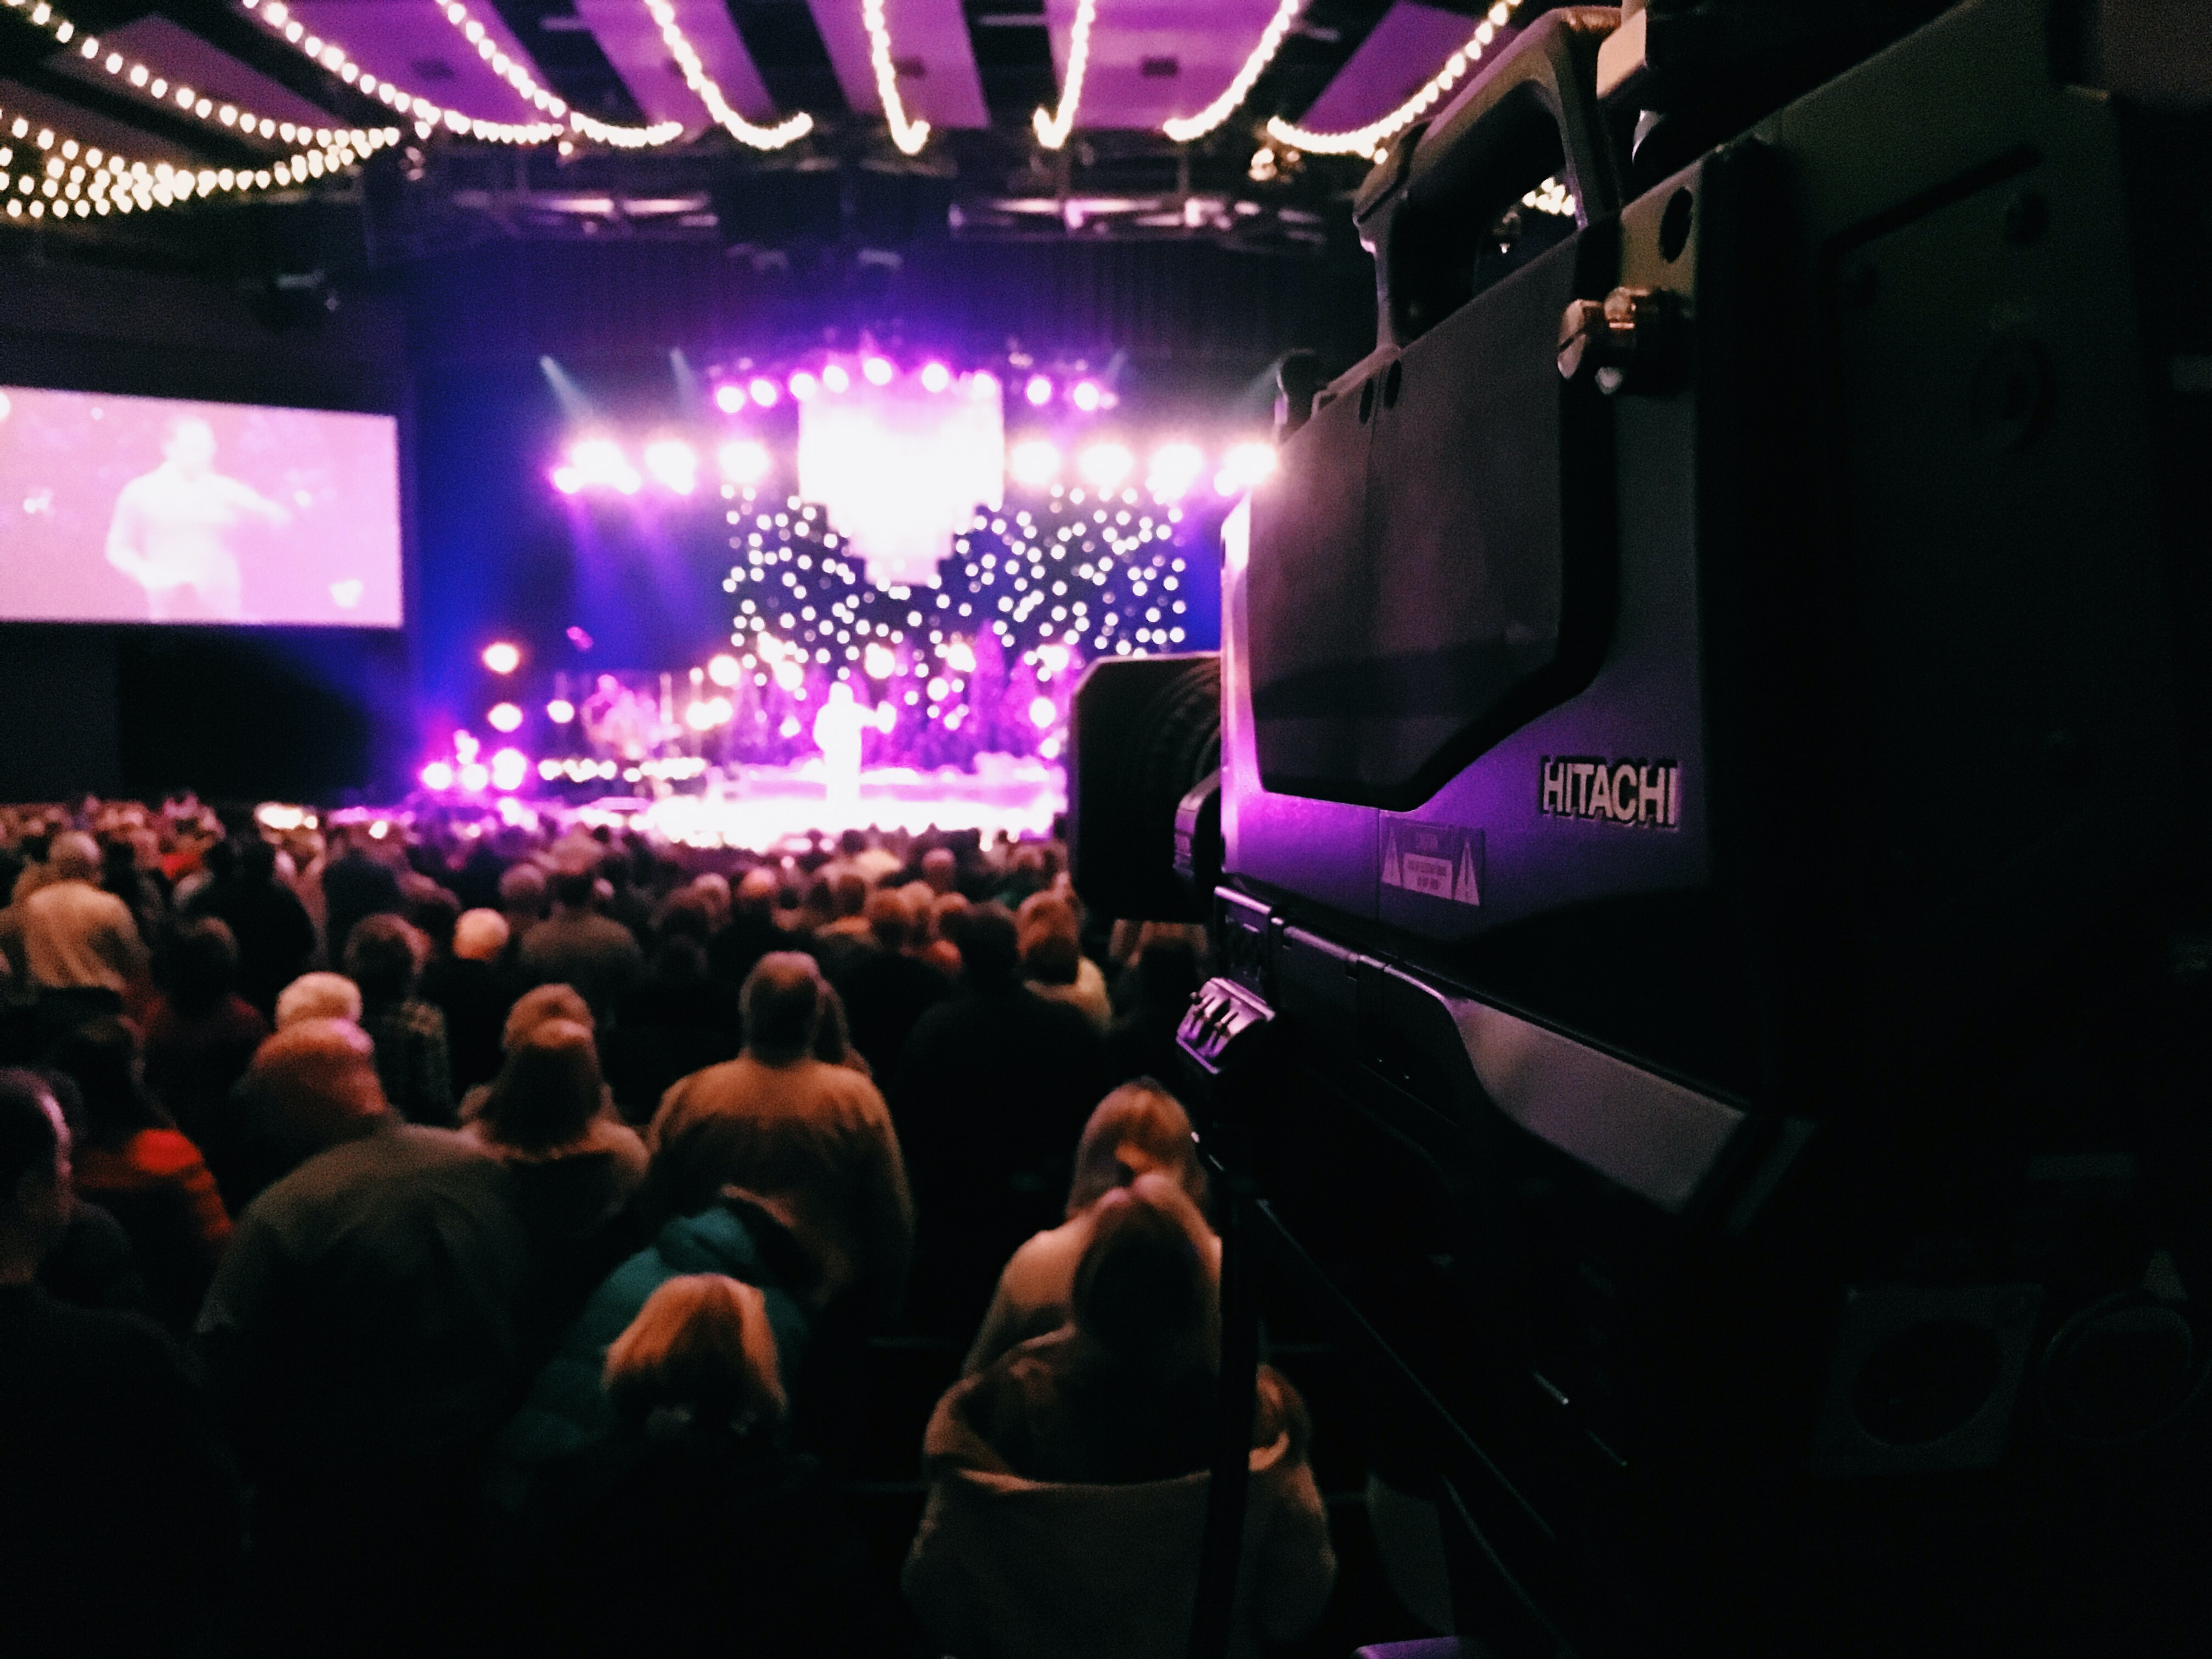 shooting live performance videos tips filmmaking filming video live video sound